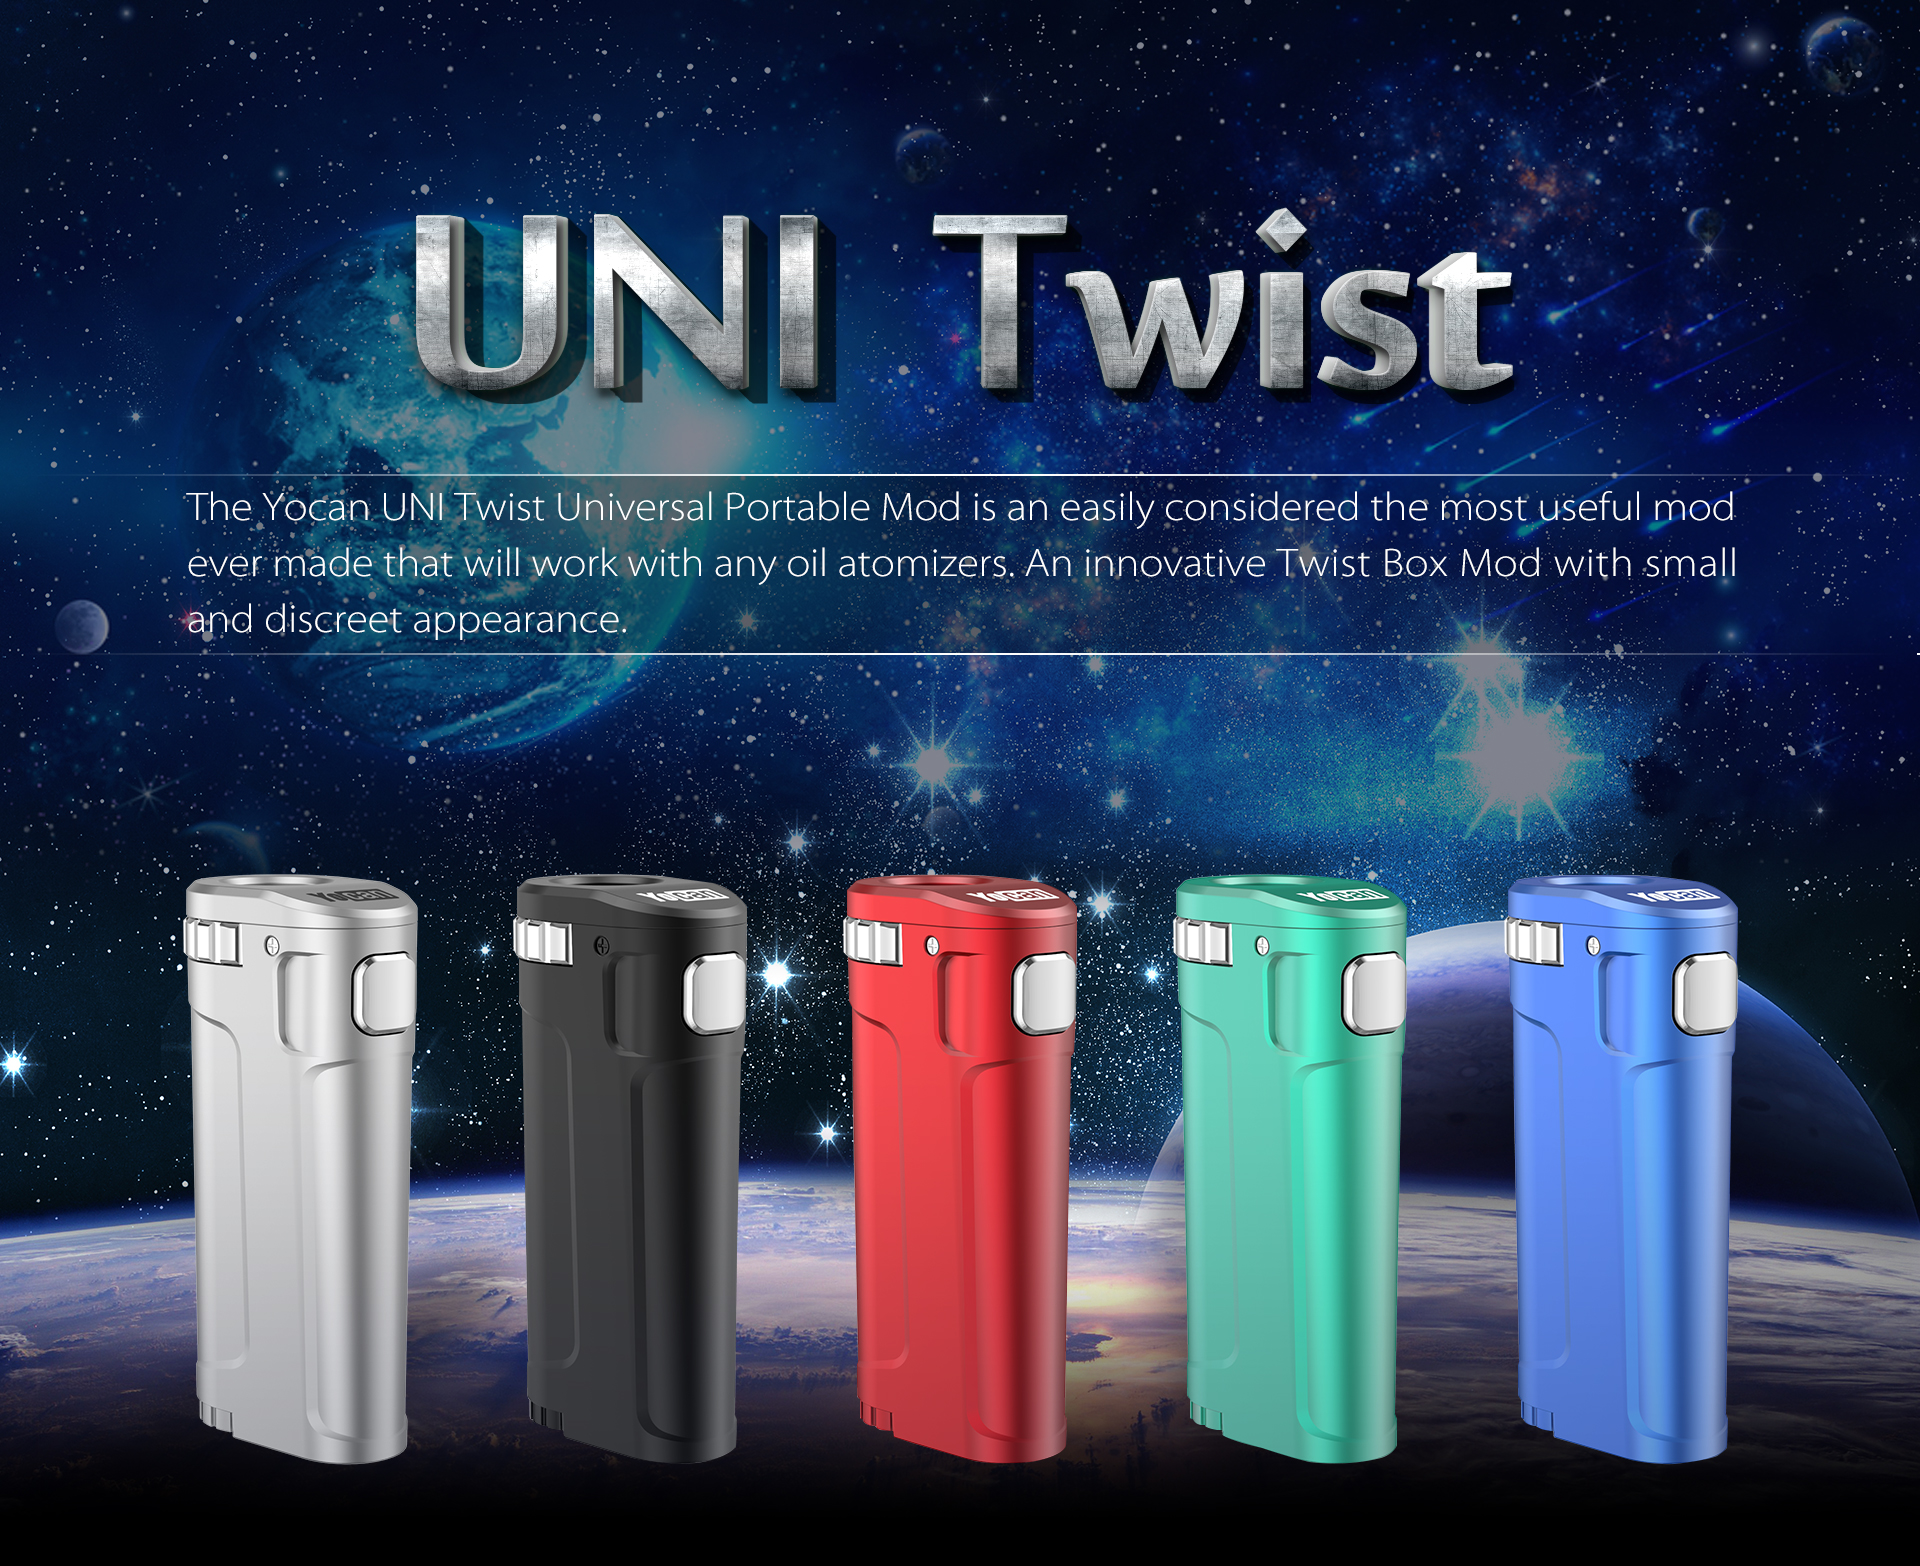 The Yocan UNI Twist Universal Portable Mod is an easily considered the most useful mod ever made